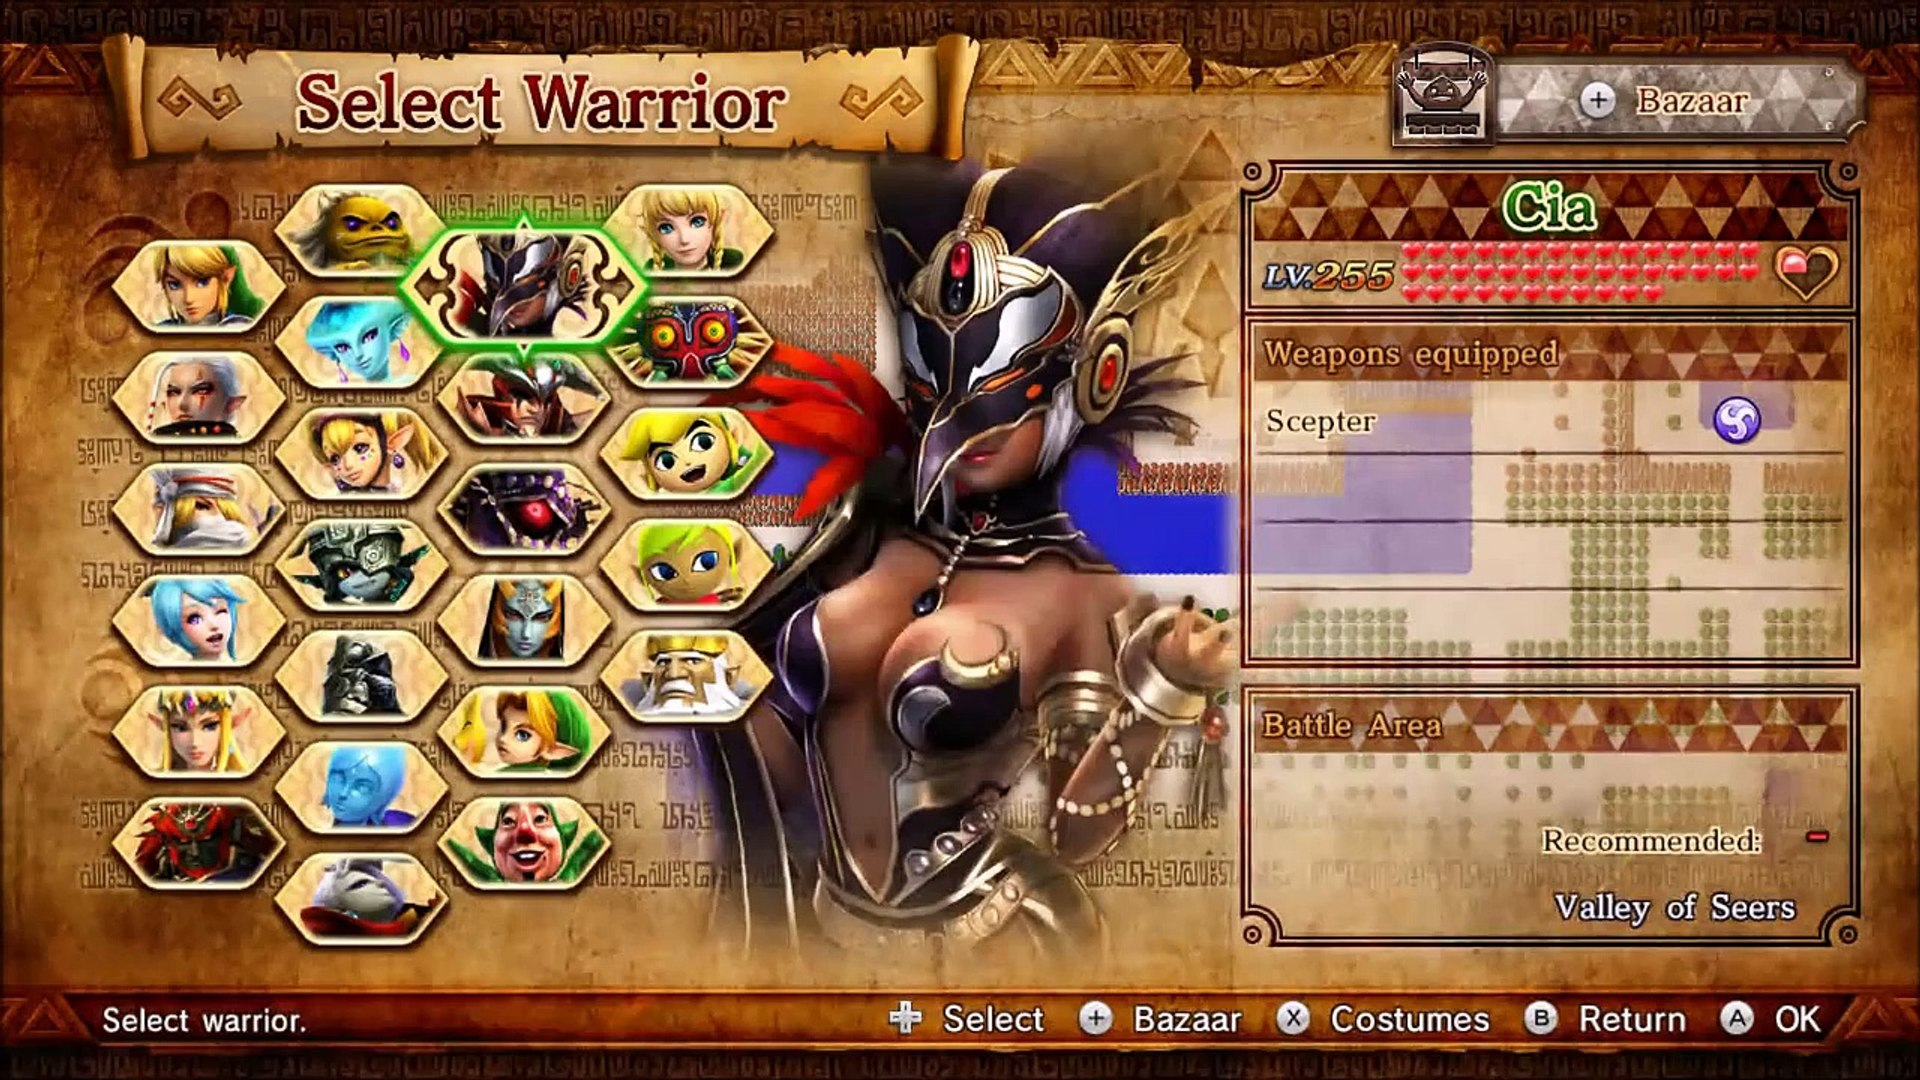 Hyrule Warriors Max Rupee Glitch With Cia Redux Video Dailymotion